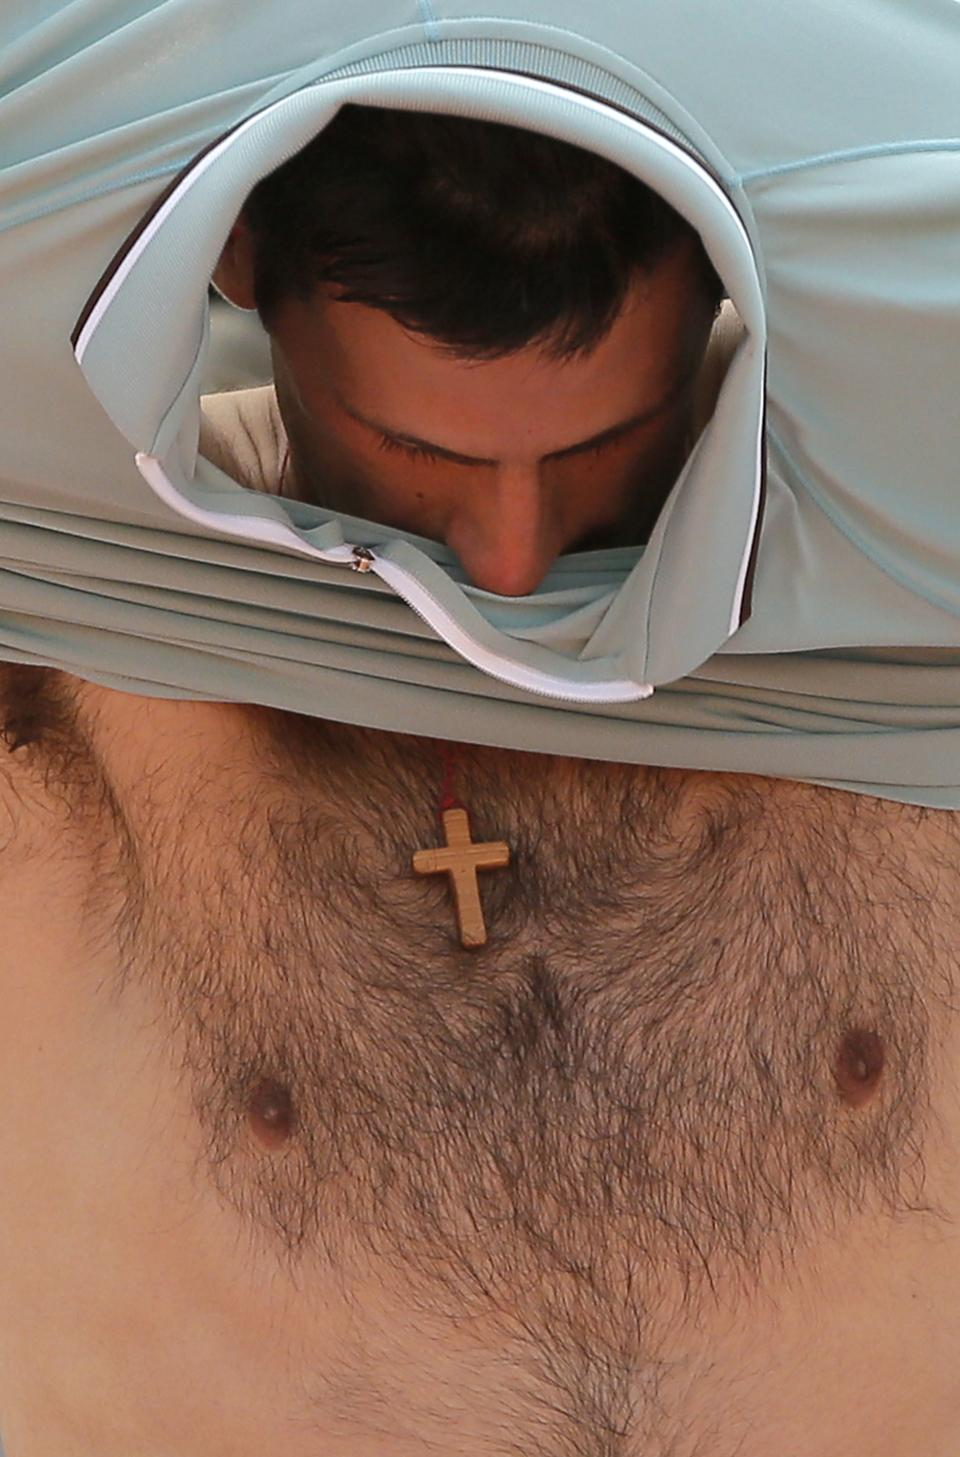 Serbia's Novak Djokovic changes his jersey during a break as he plays Germany's Tommy Haas during their quarterfinal match of the French Open tennis tournament at the Roland Garros stadium Wednesday, June 5, 2013 in Paris. Djokovic won 6-3, 7-6, 7-5. (AP Photo/Michel Spingler)